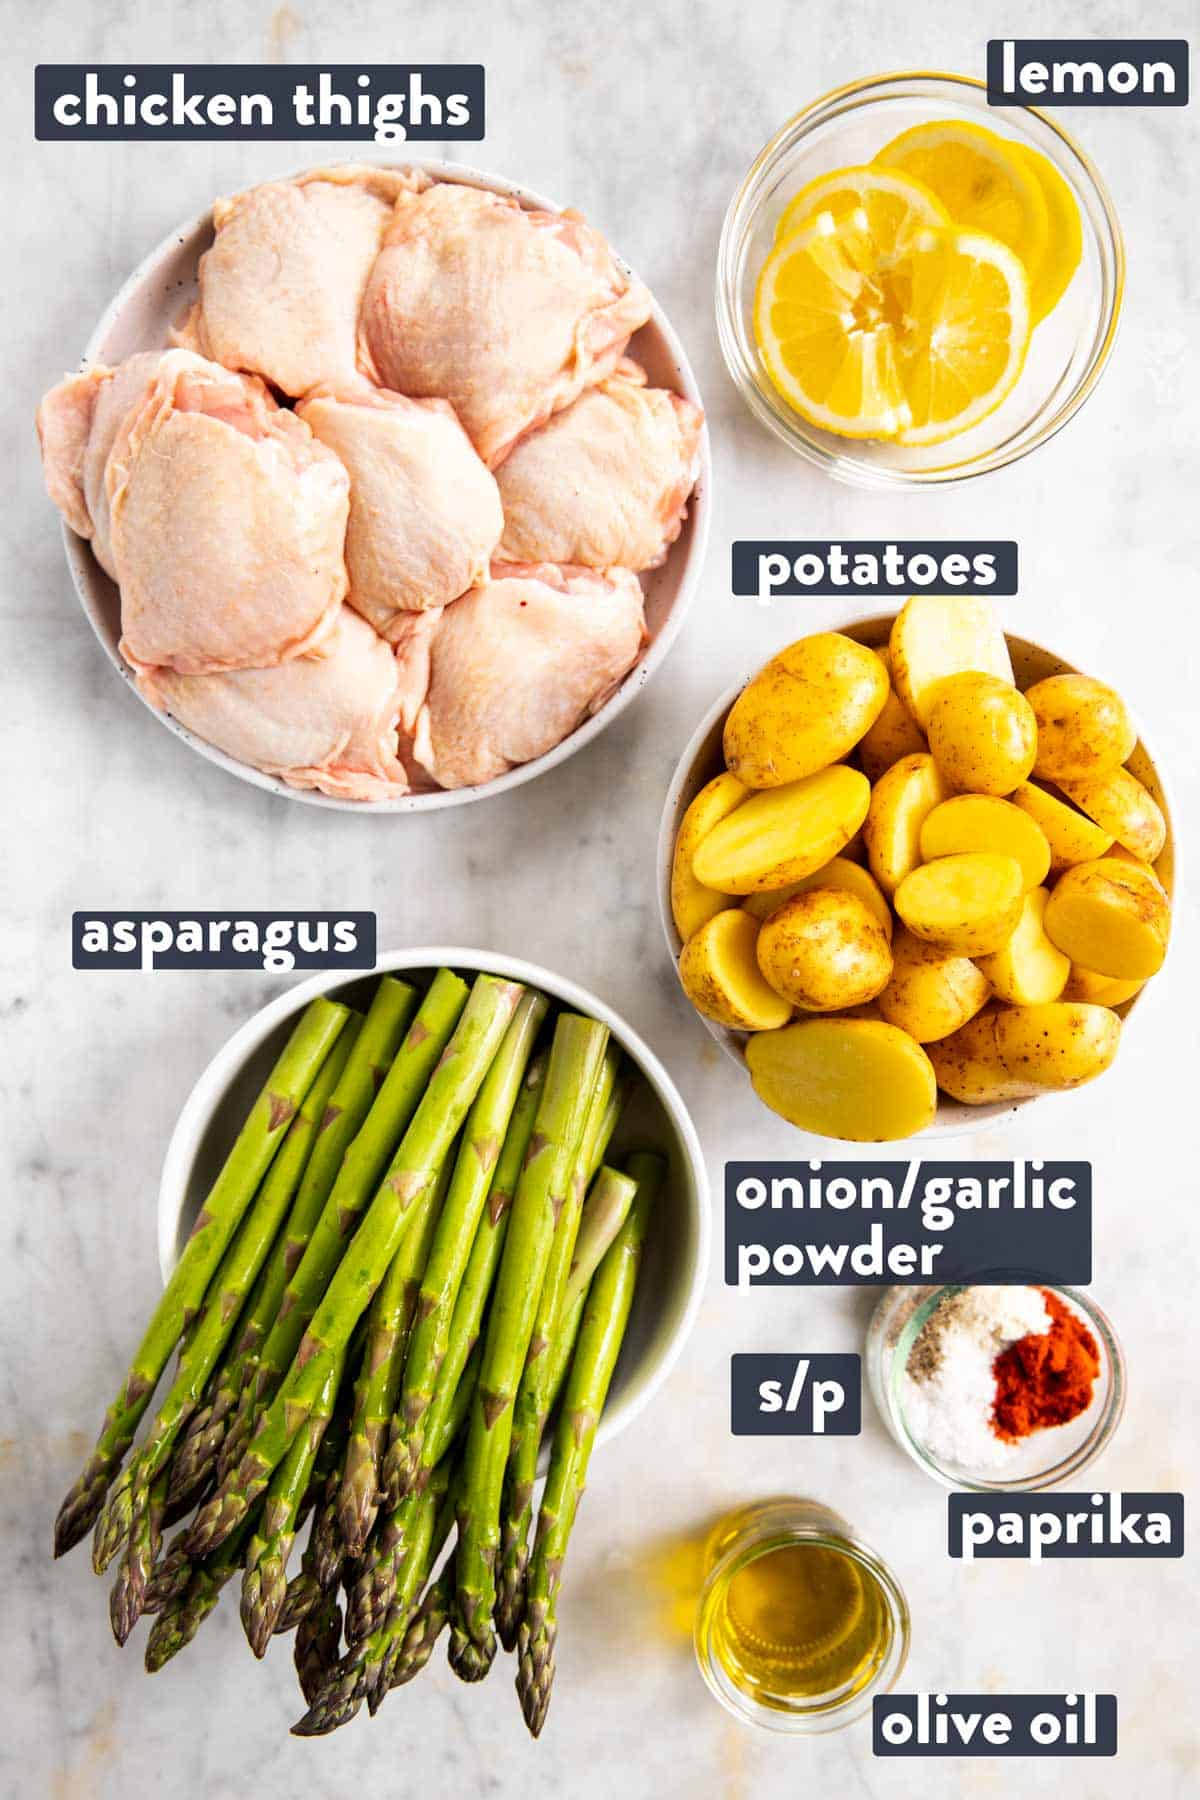 ingredients for chicken and asparagus sheet pan dinner with text labels